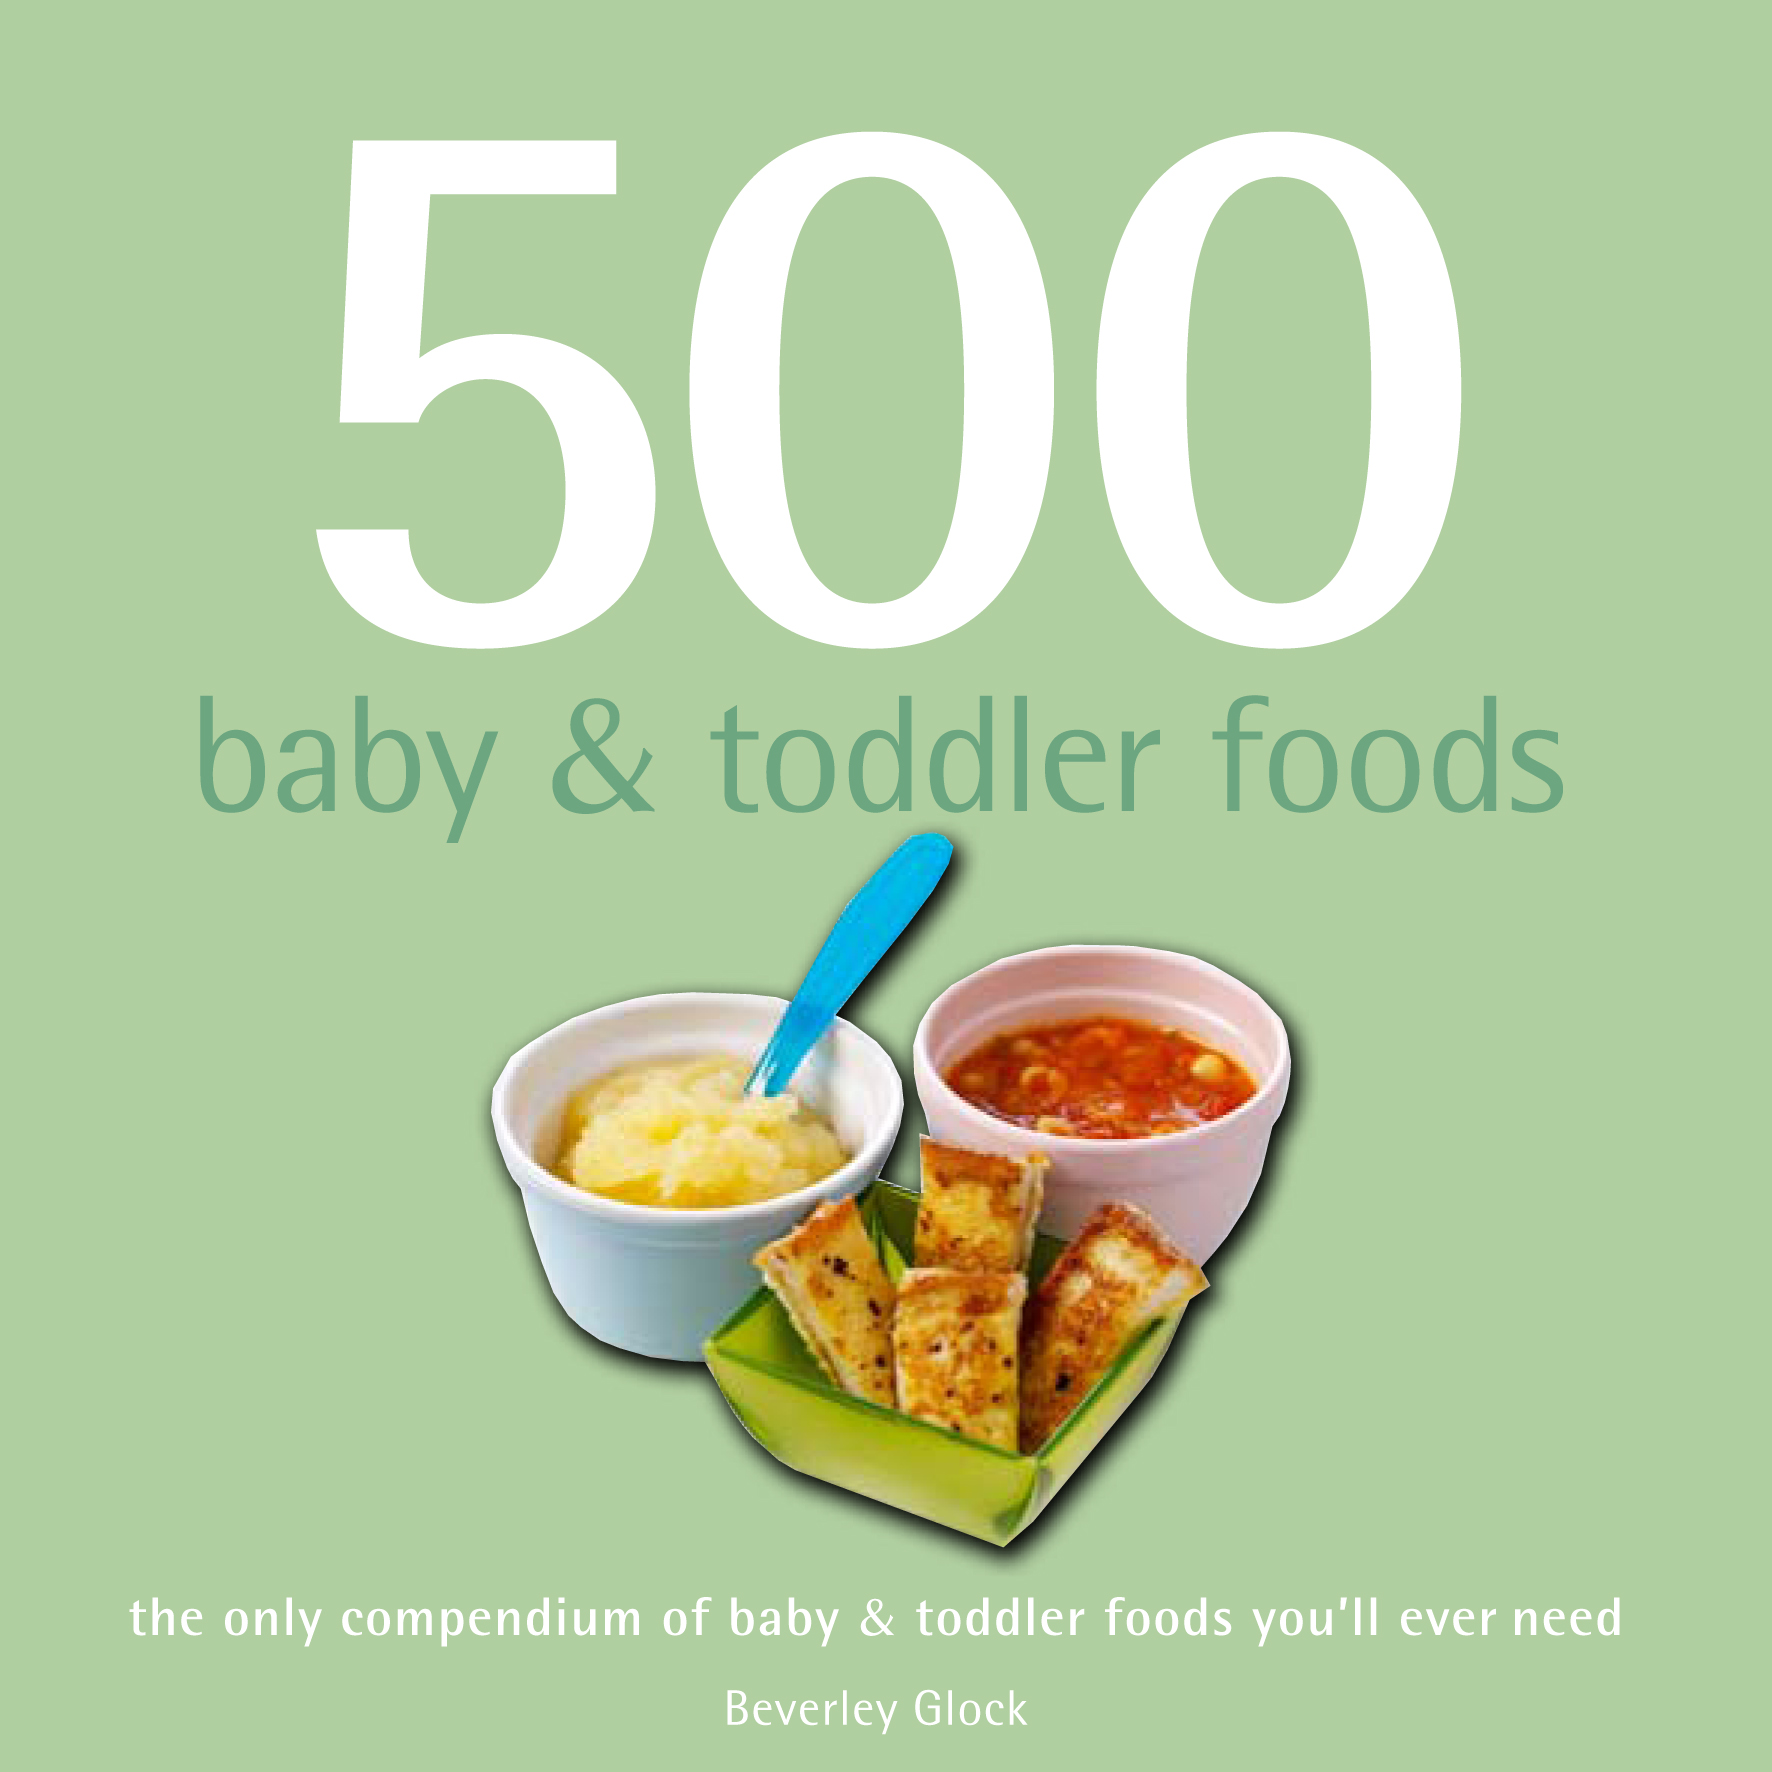 Picture of 500 baby & toddler foods